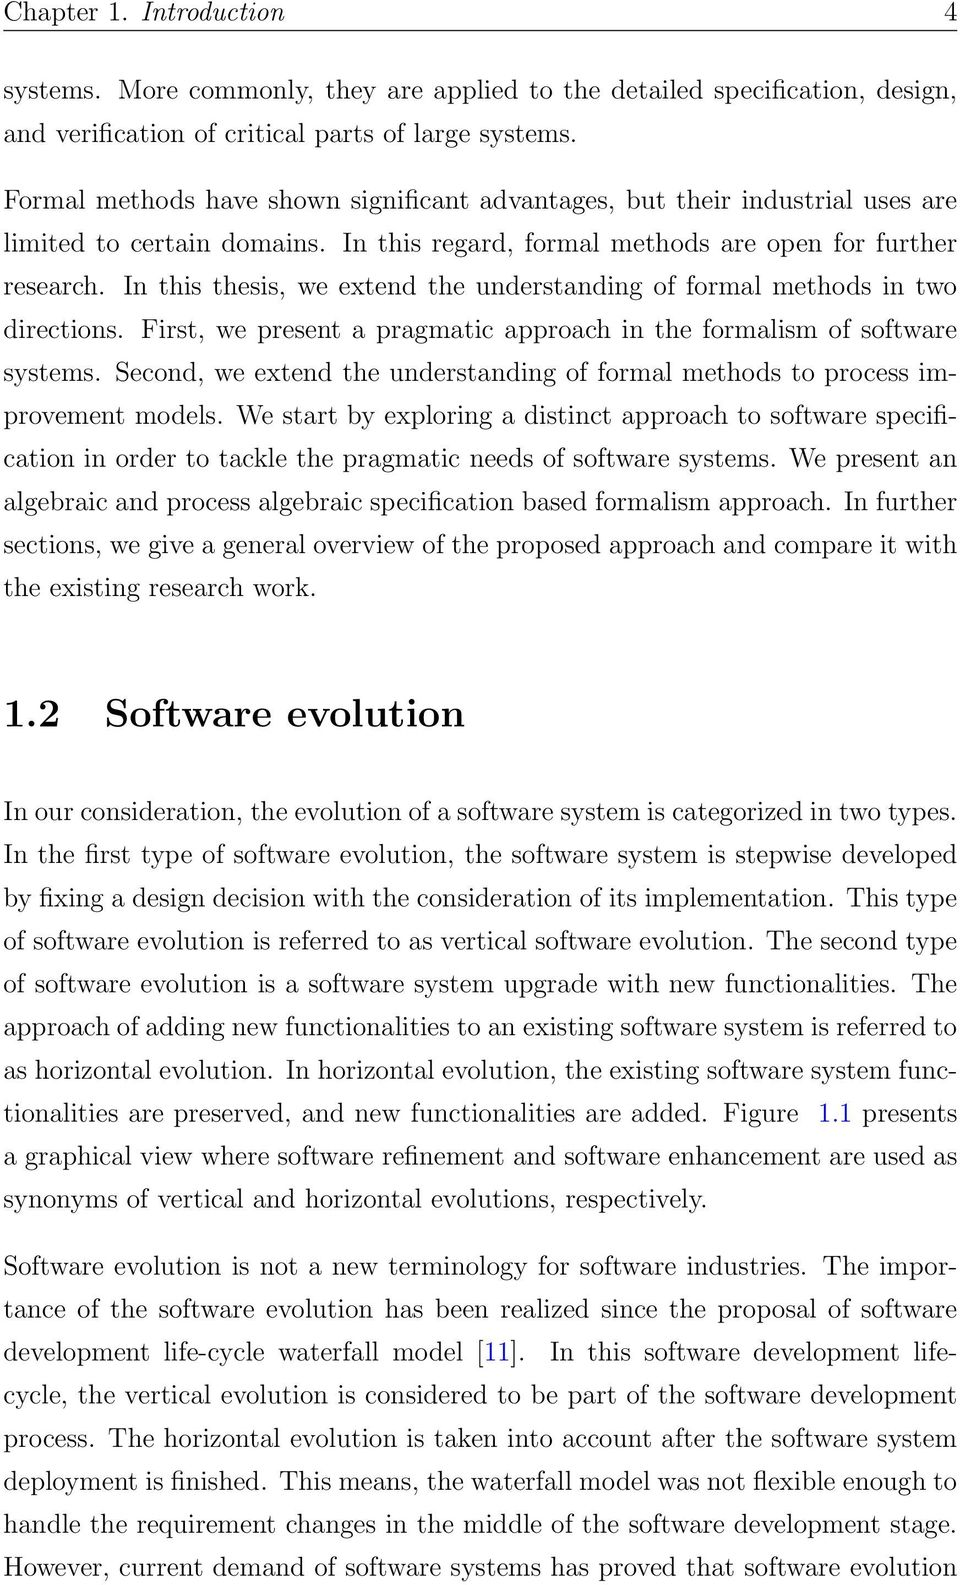 In this thesis, we extend the understanding of formal methods in two directions. First, we present a pragmatic approach in the formalism of software systems.